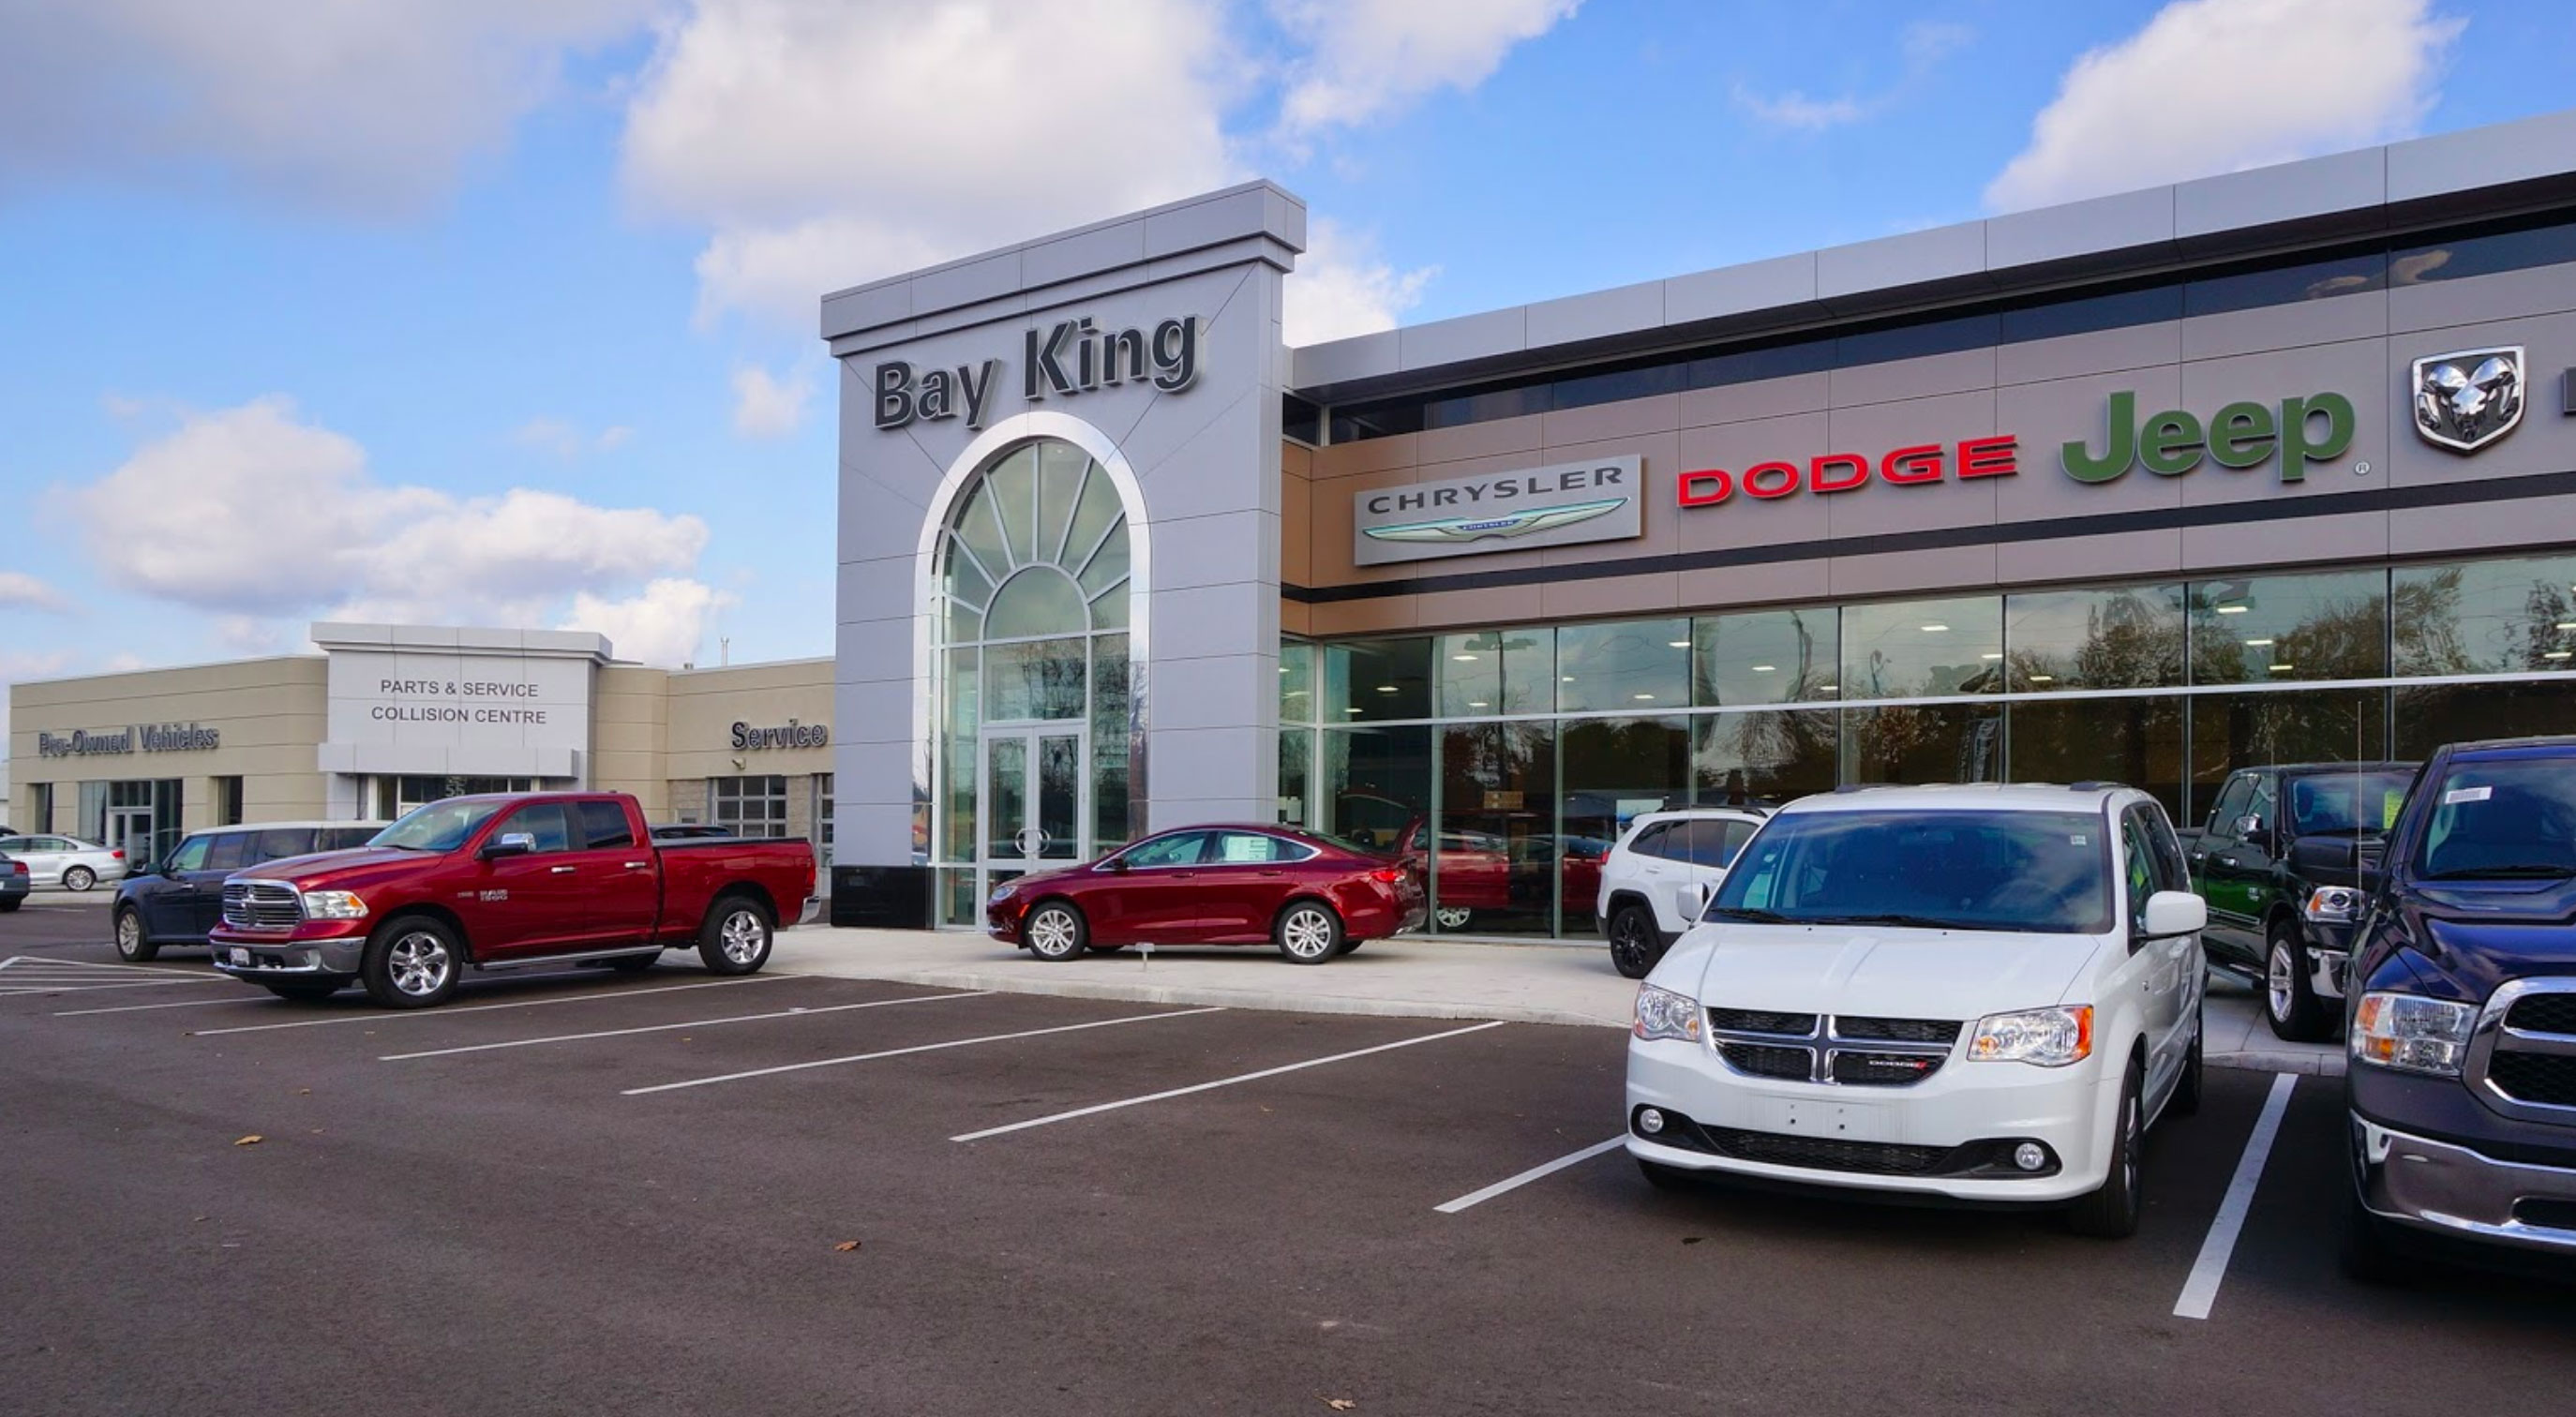 Bay King Chrysler